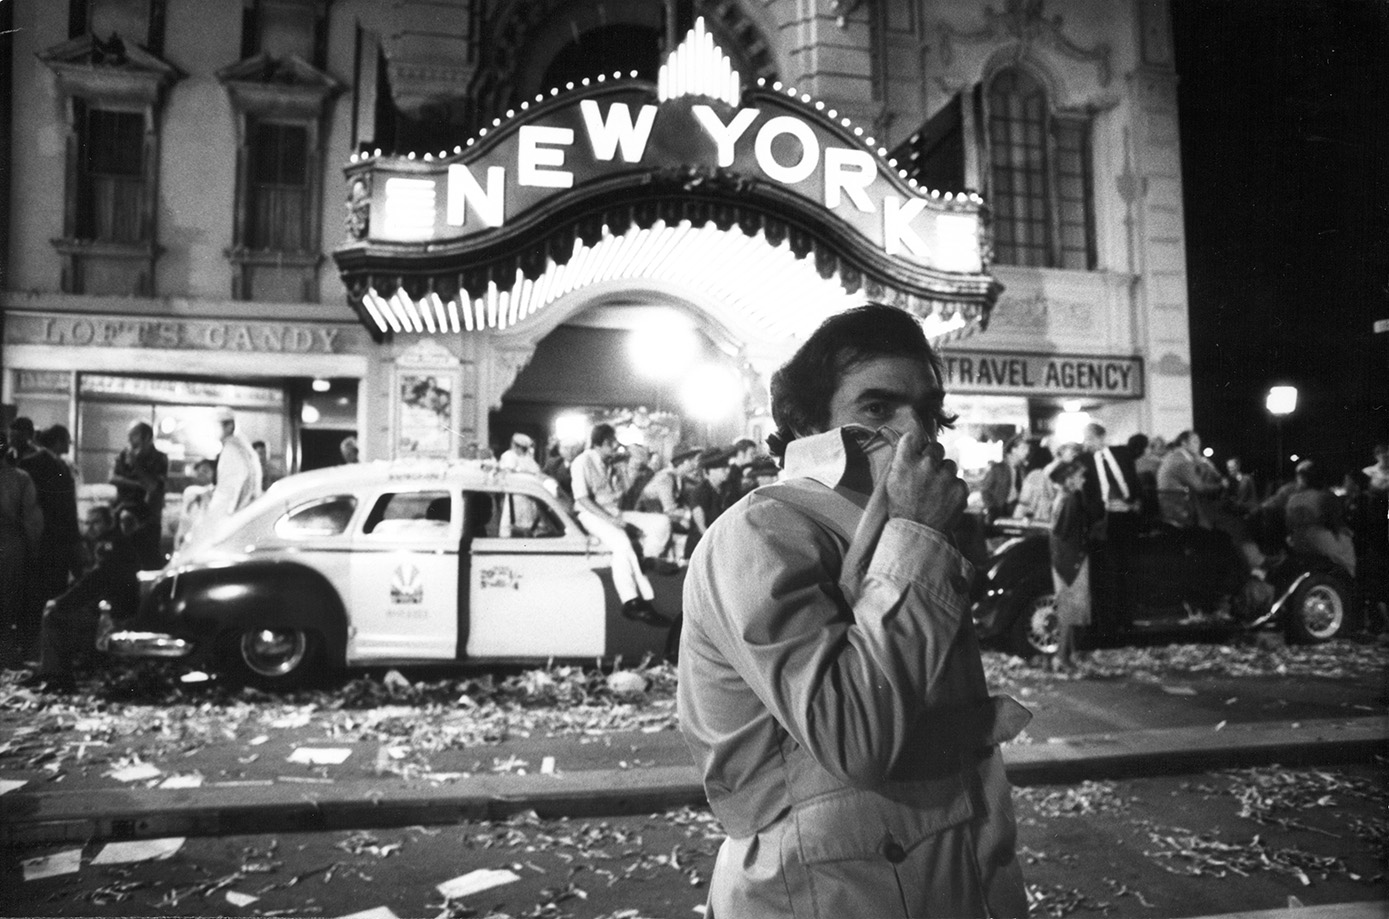 Martin Scorsese, New York, New York, 1977. Martin Scorsese Collection, New York.